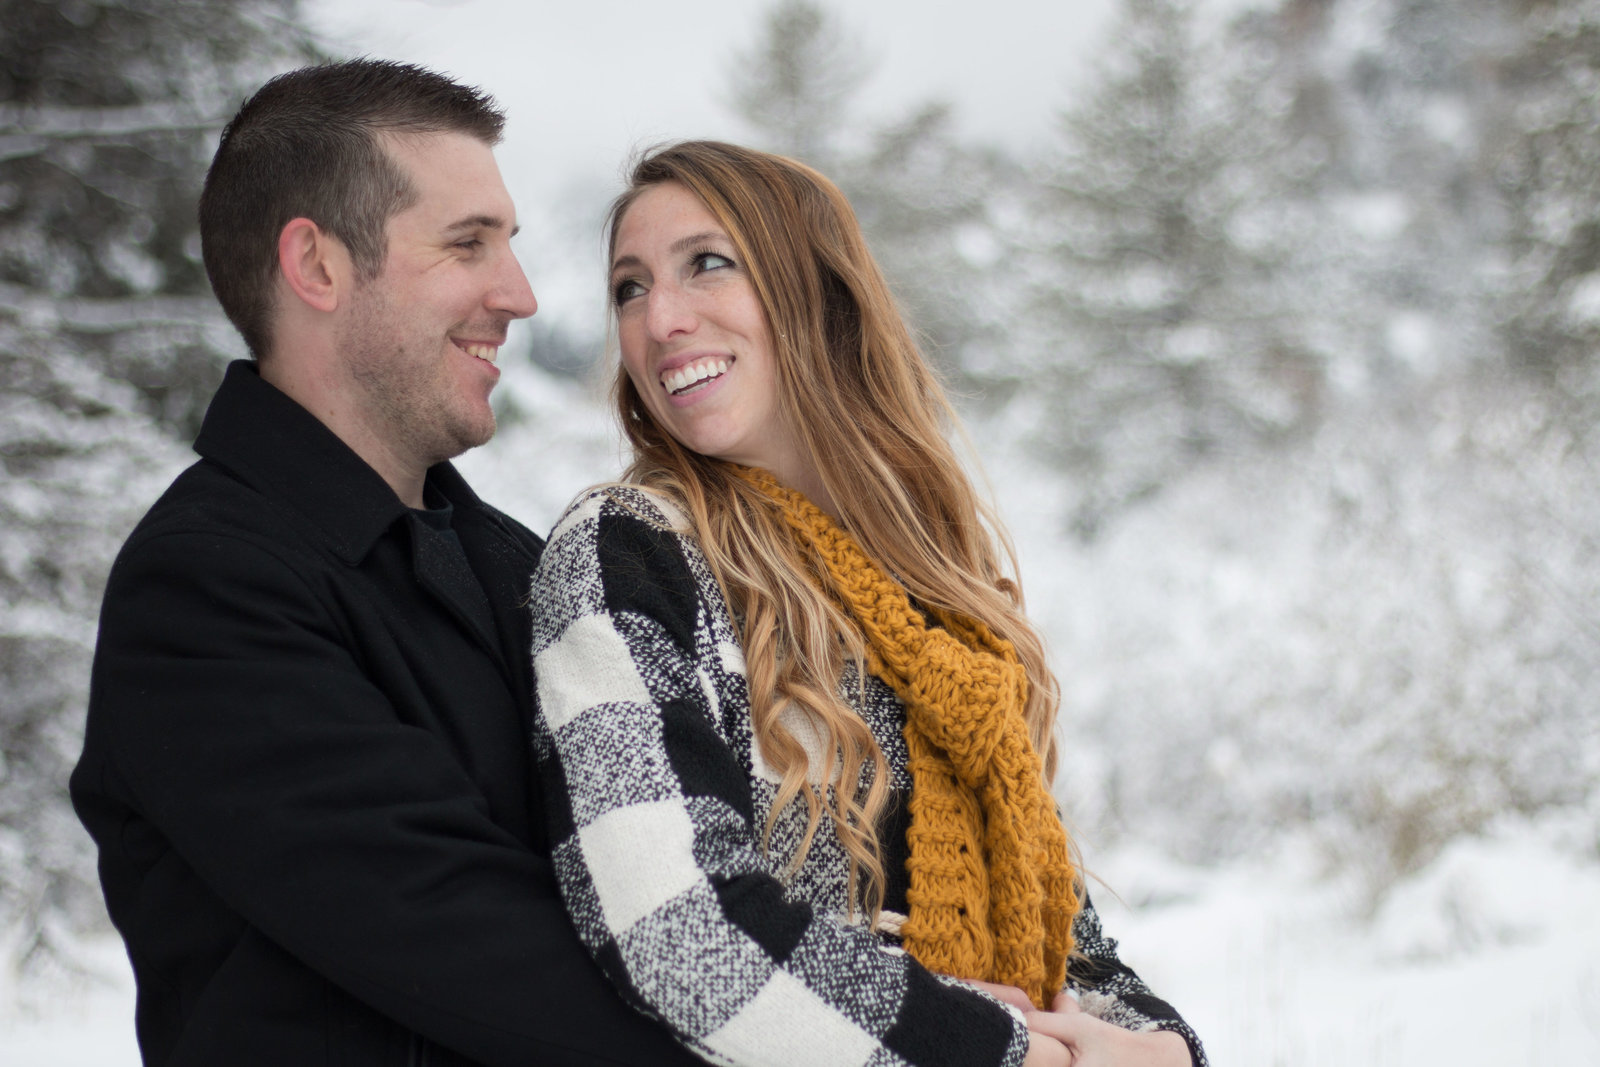 Big Bear engagement session in the snow